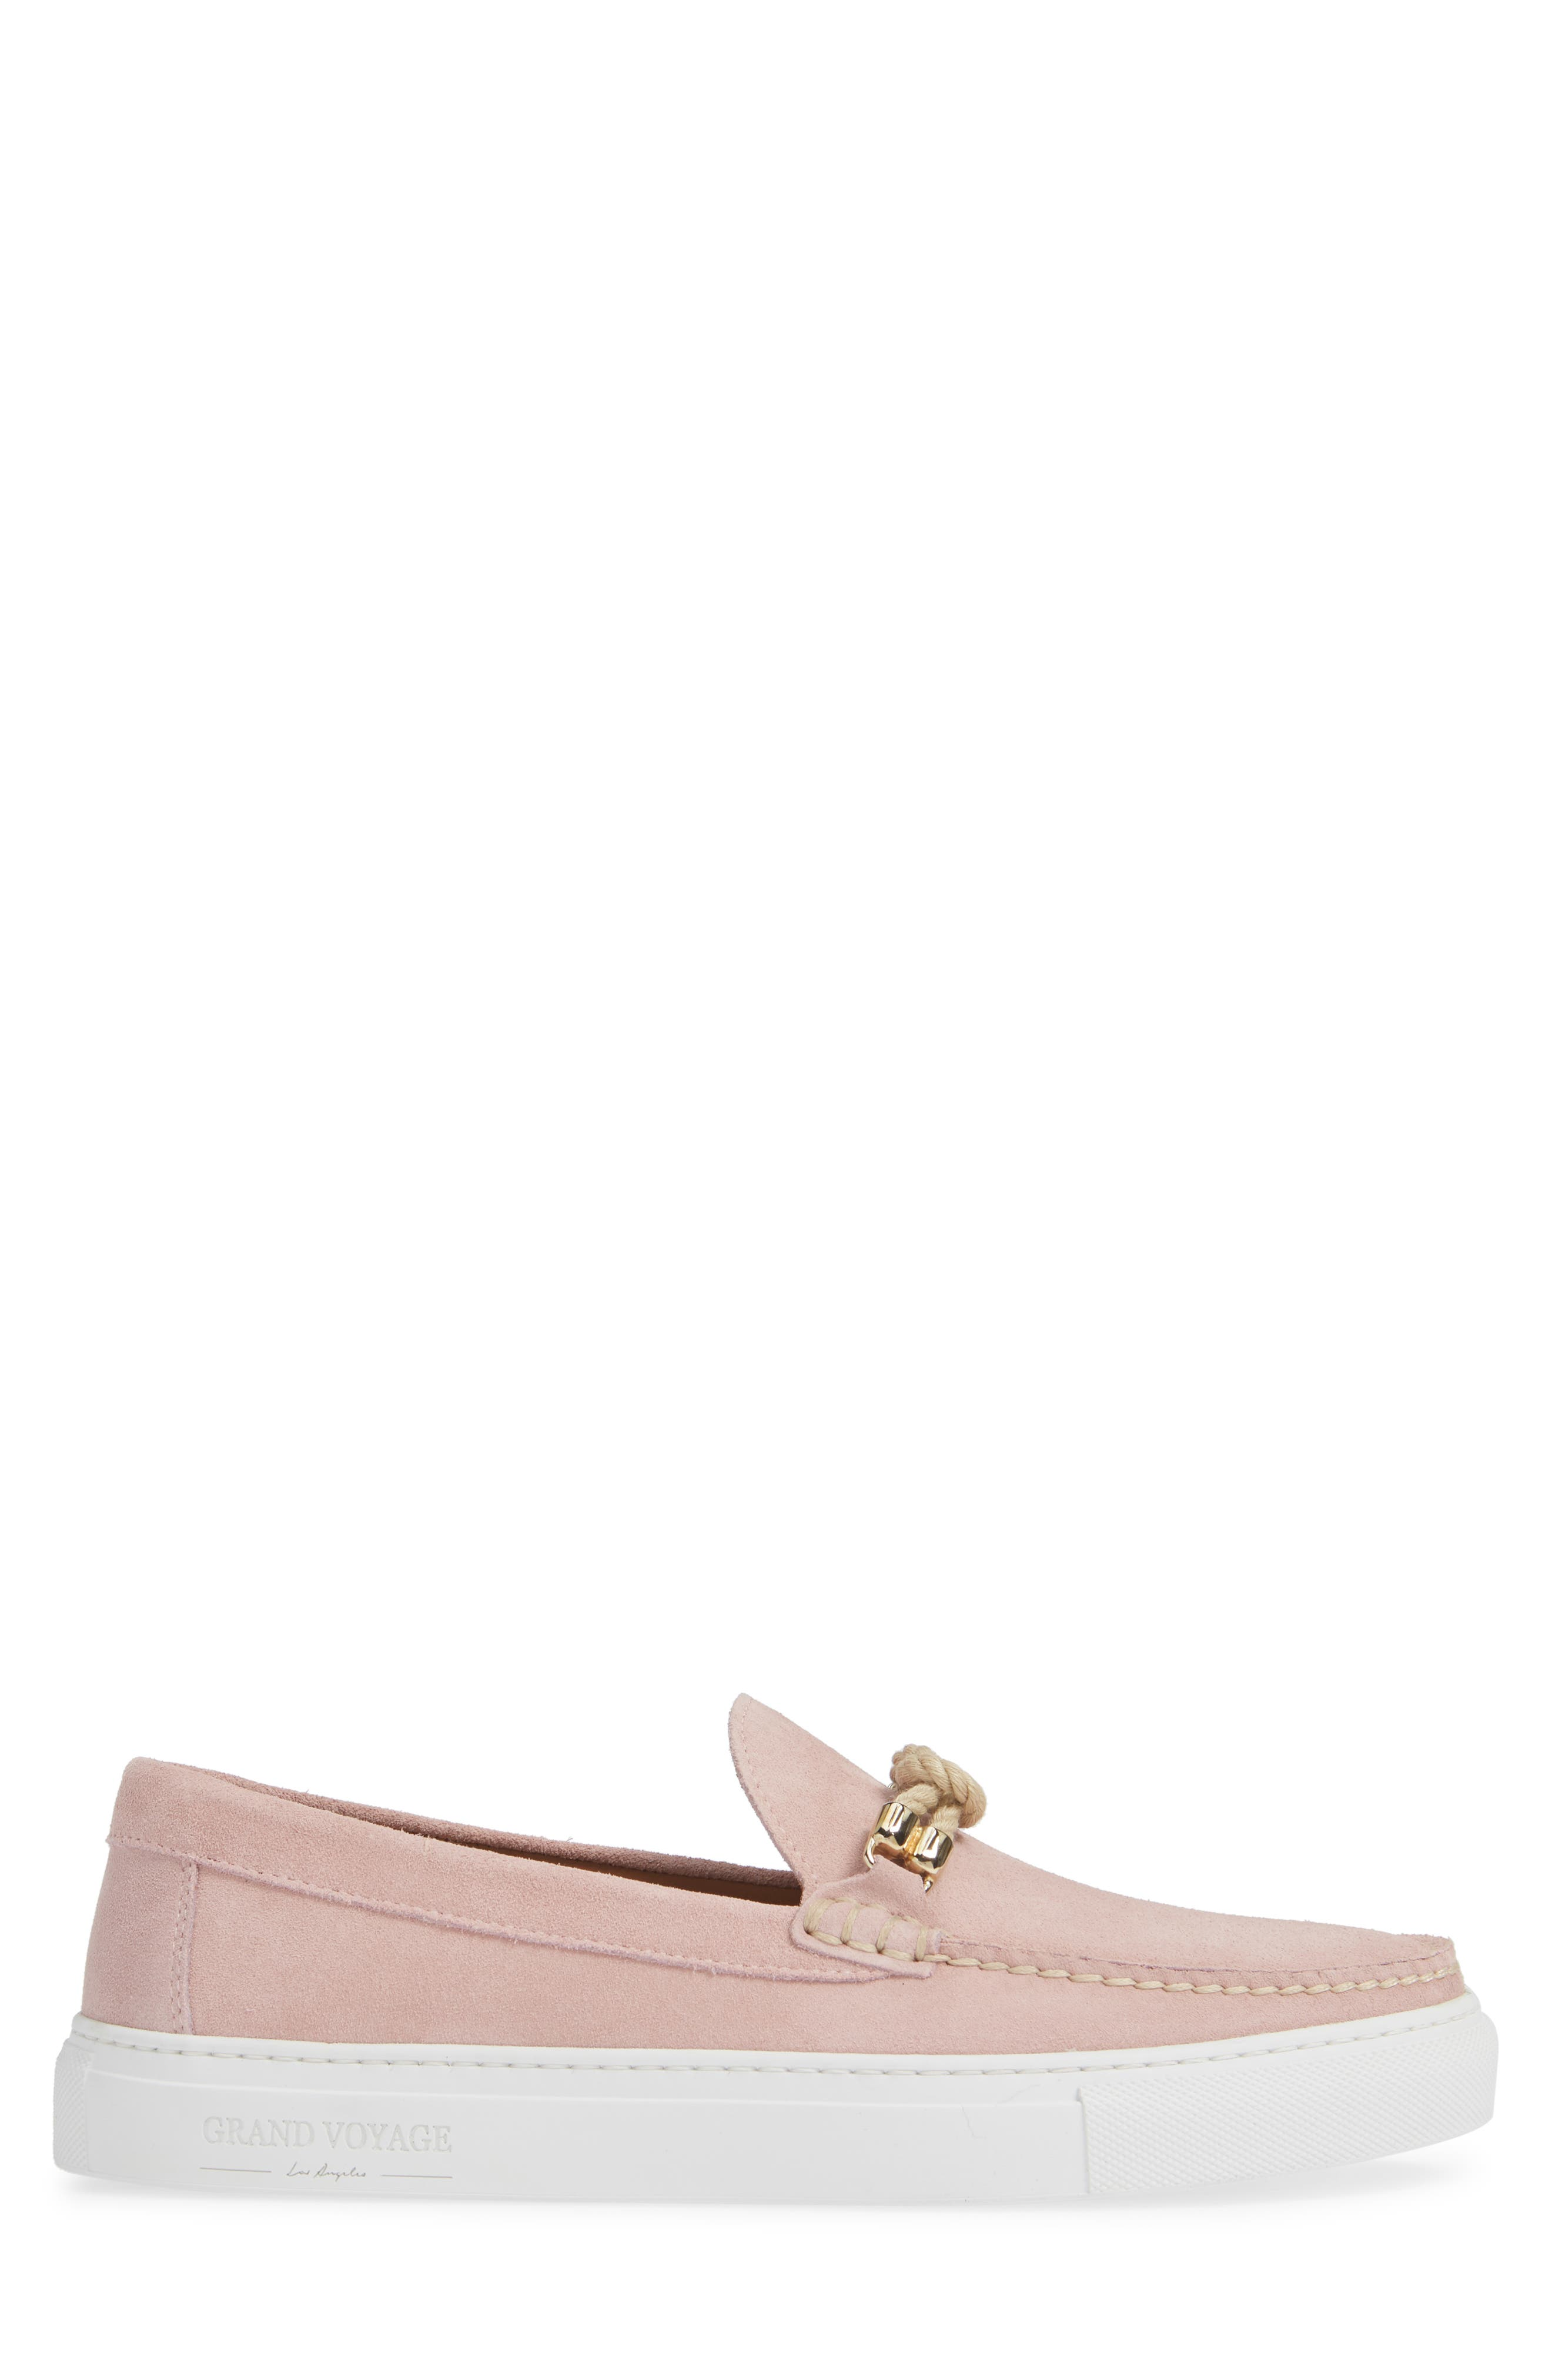 Britton Square Knot Loafer,                             Alternate thumbnail 3, color,                             ROSE SUEDE